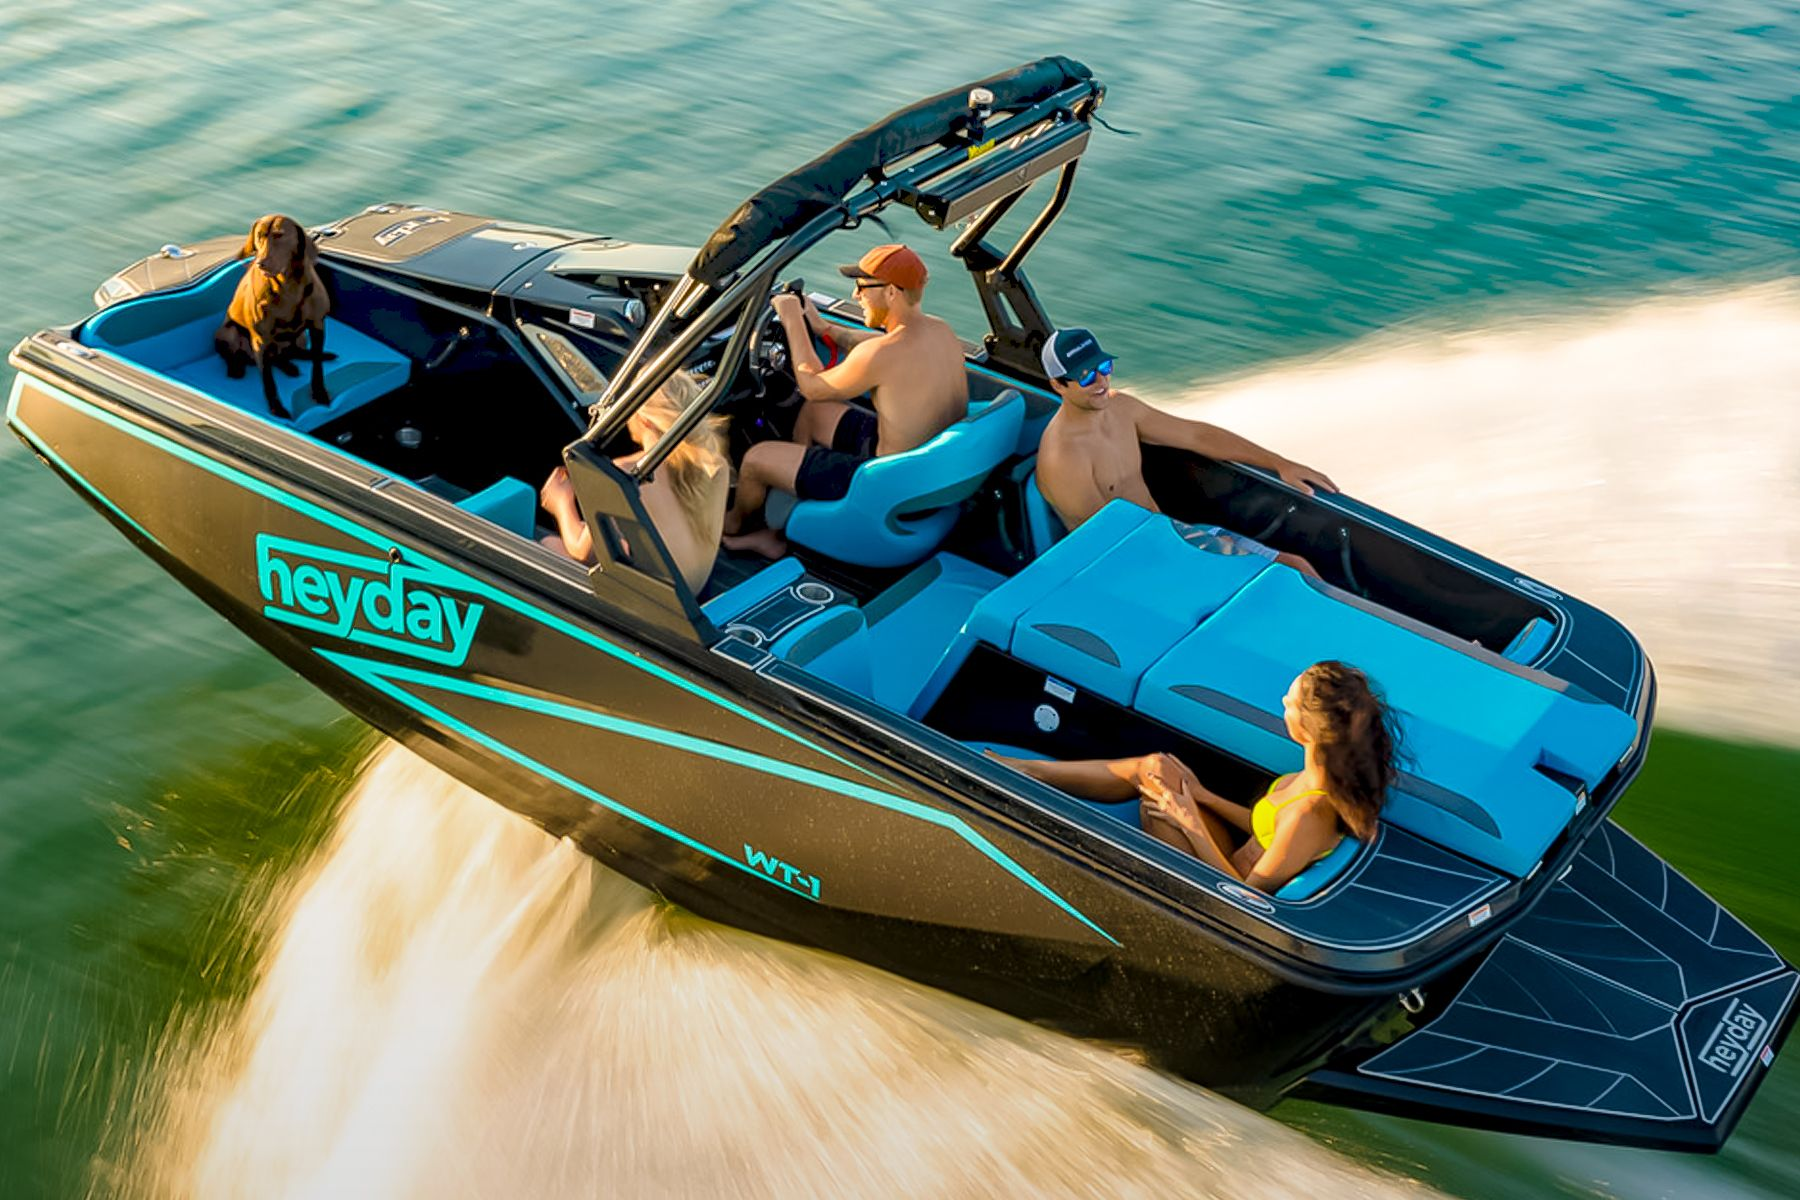 Surf Boat Rentals in Penticton for all Your Water Sports